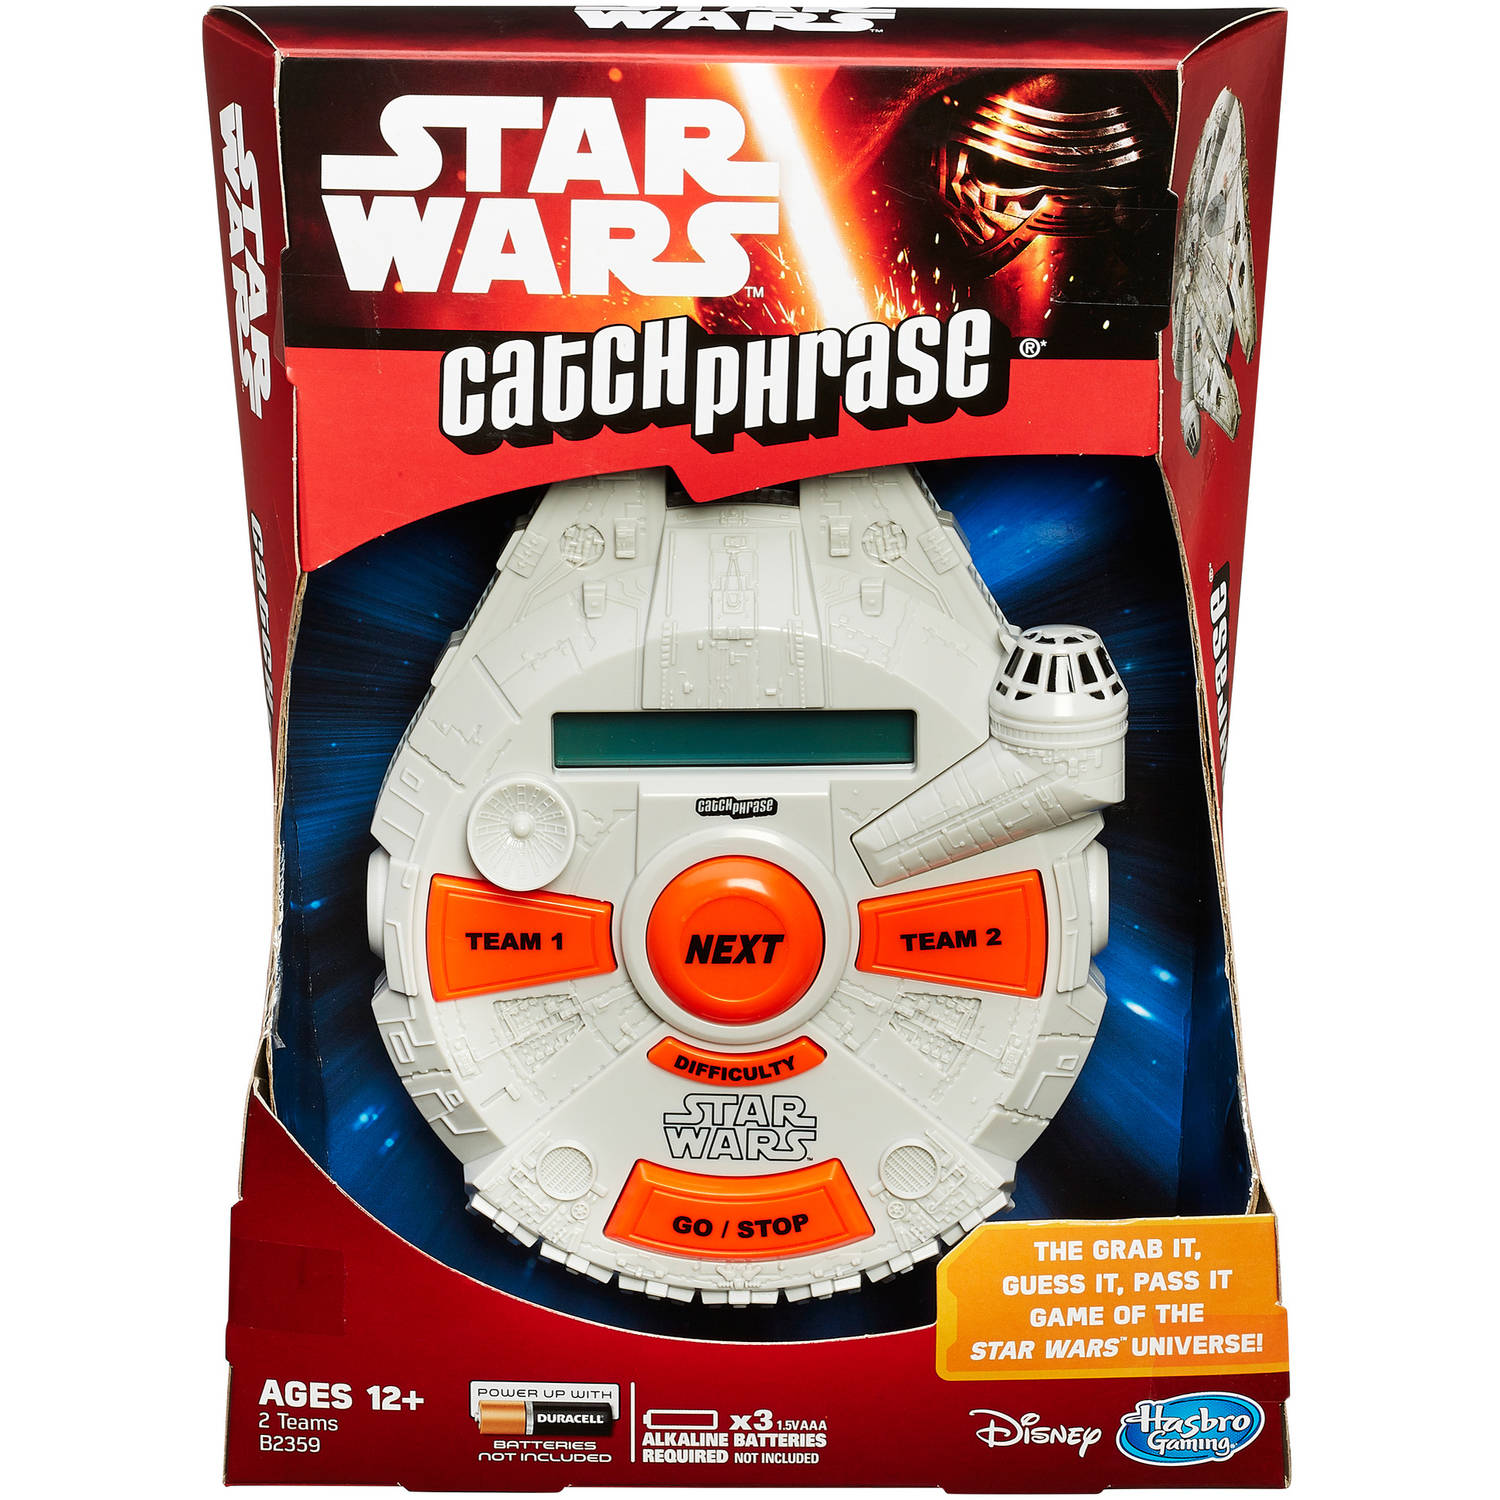 Star Wars Catch Phrase Game & Star Wars Loopin' Chewie